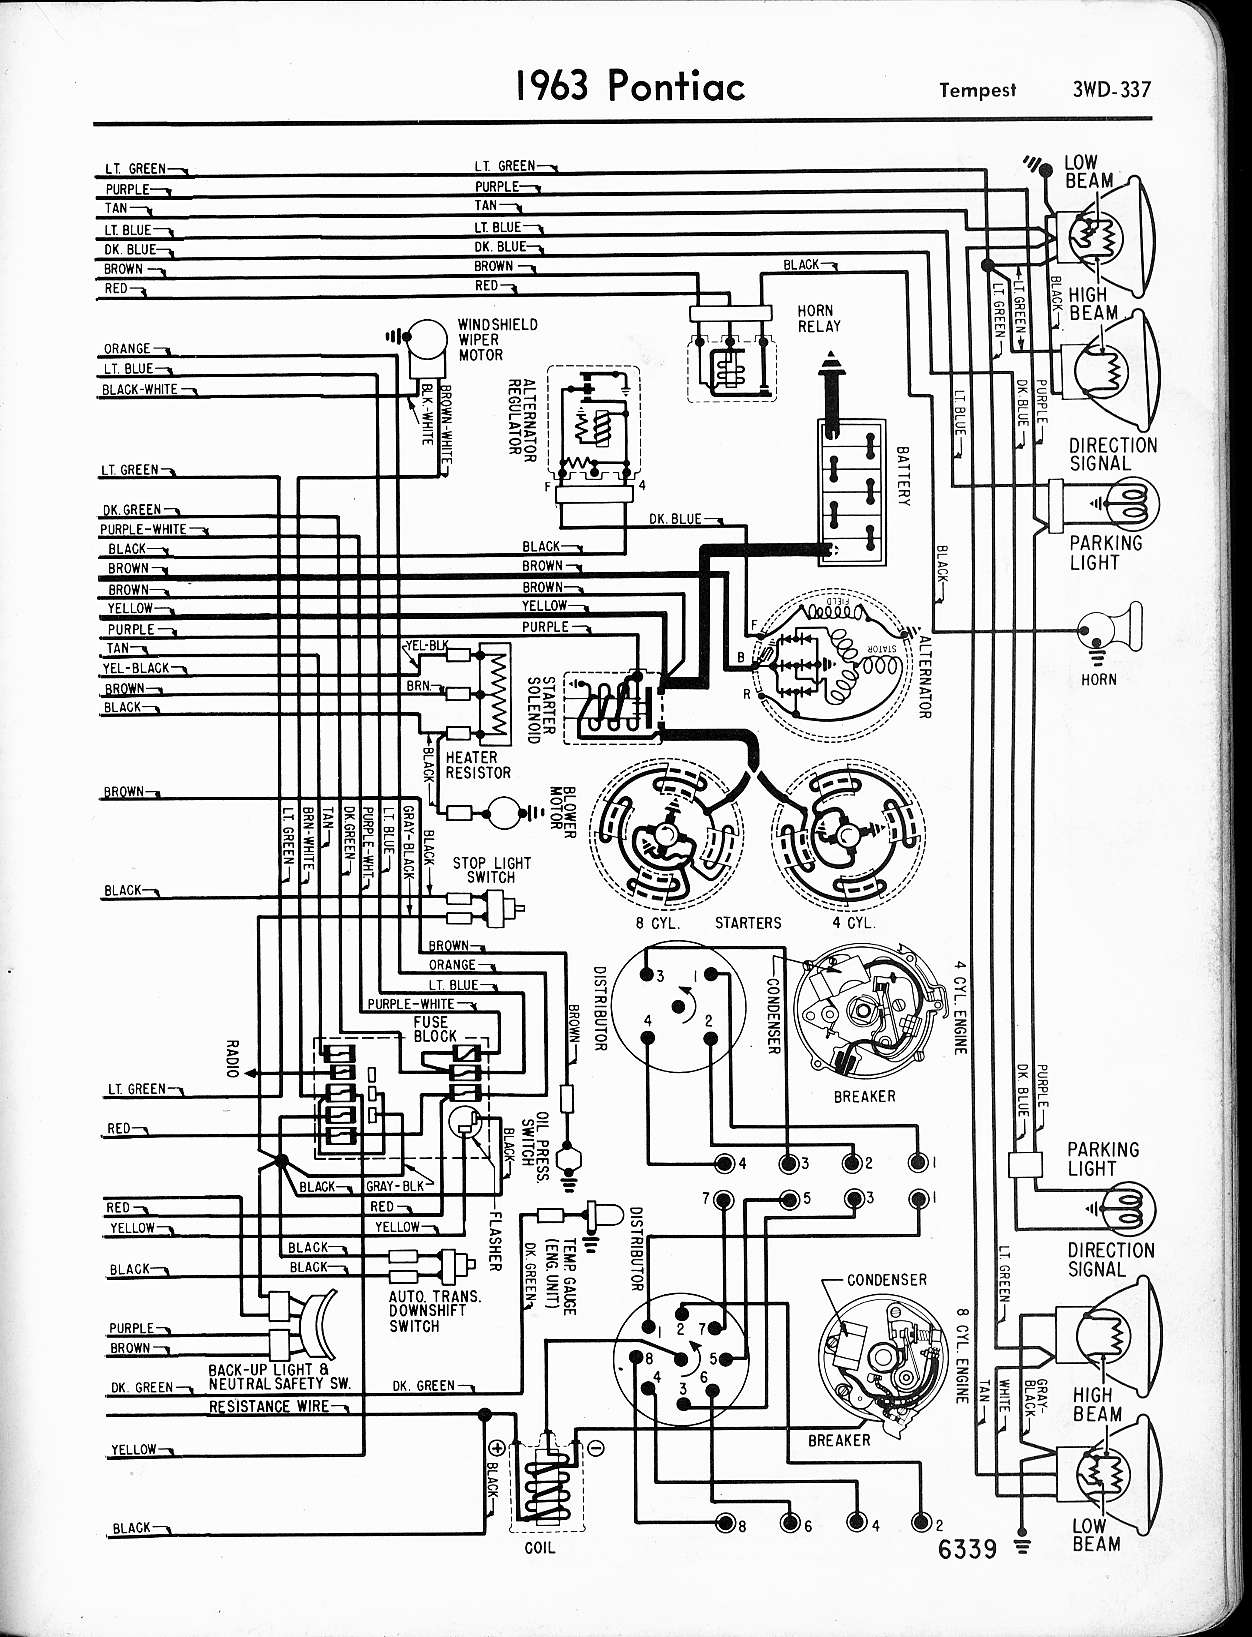 wallace racing wiring diagrams rh wallaceracing com 95 Firebird Wiring Diagram 1970 Firebird Wiring Diagram